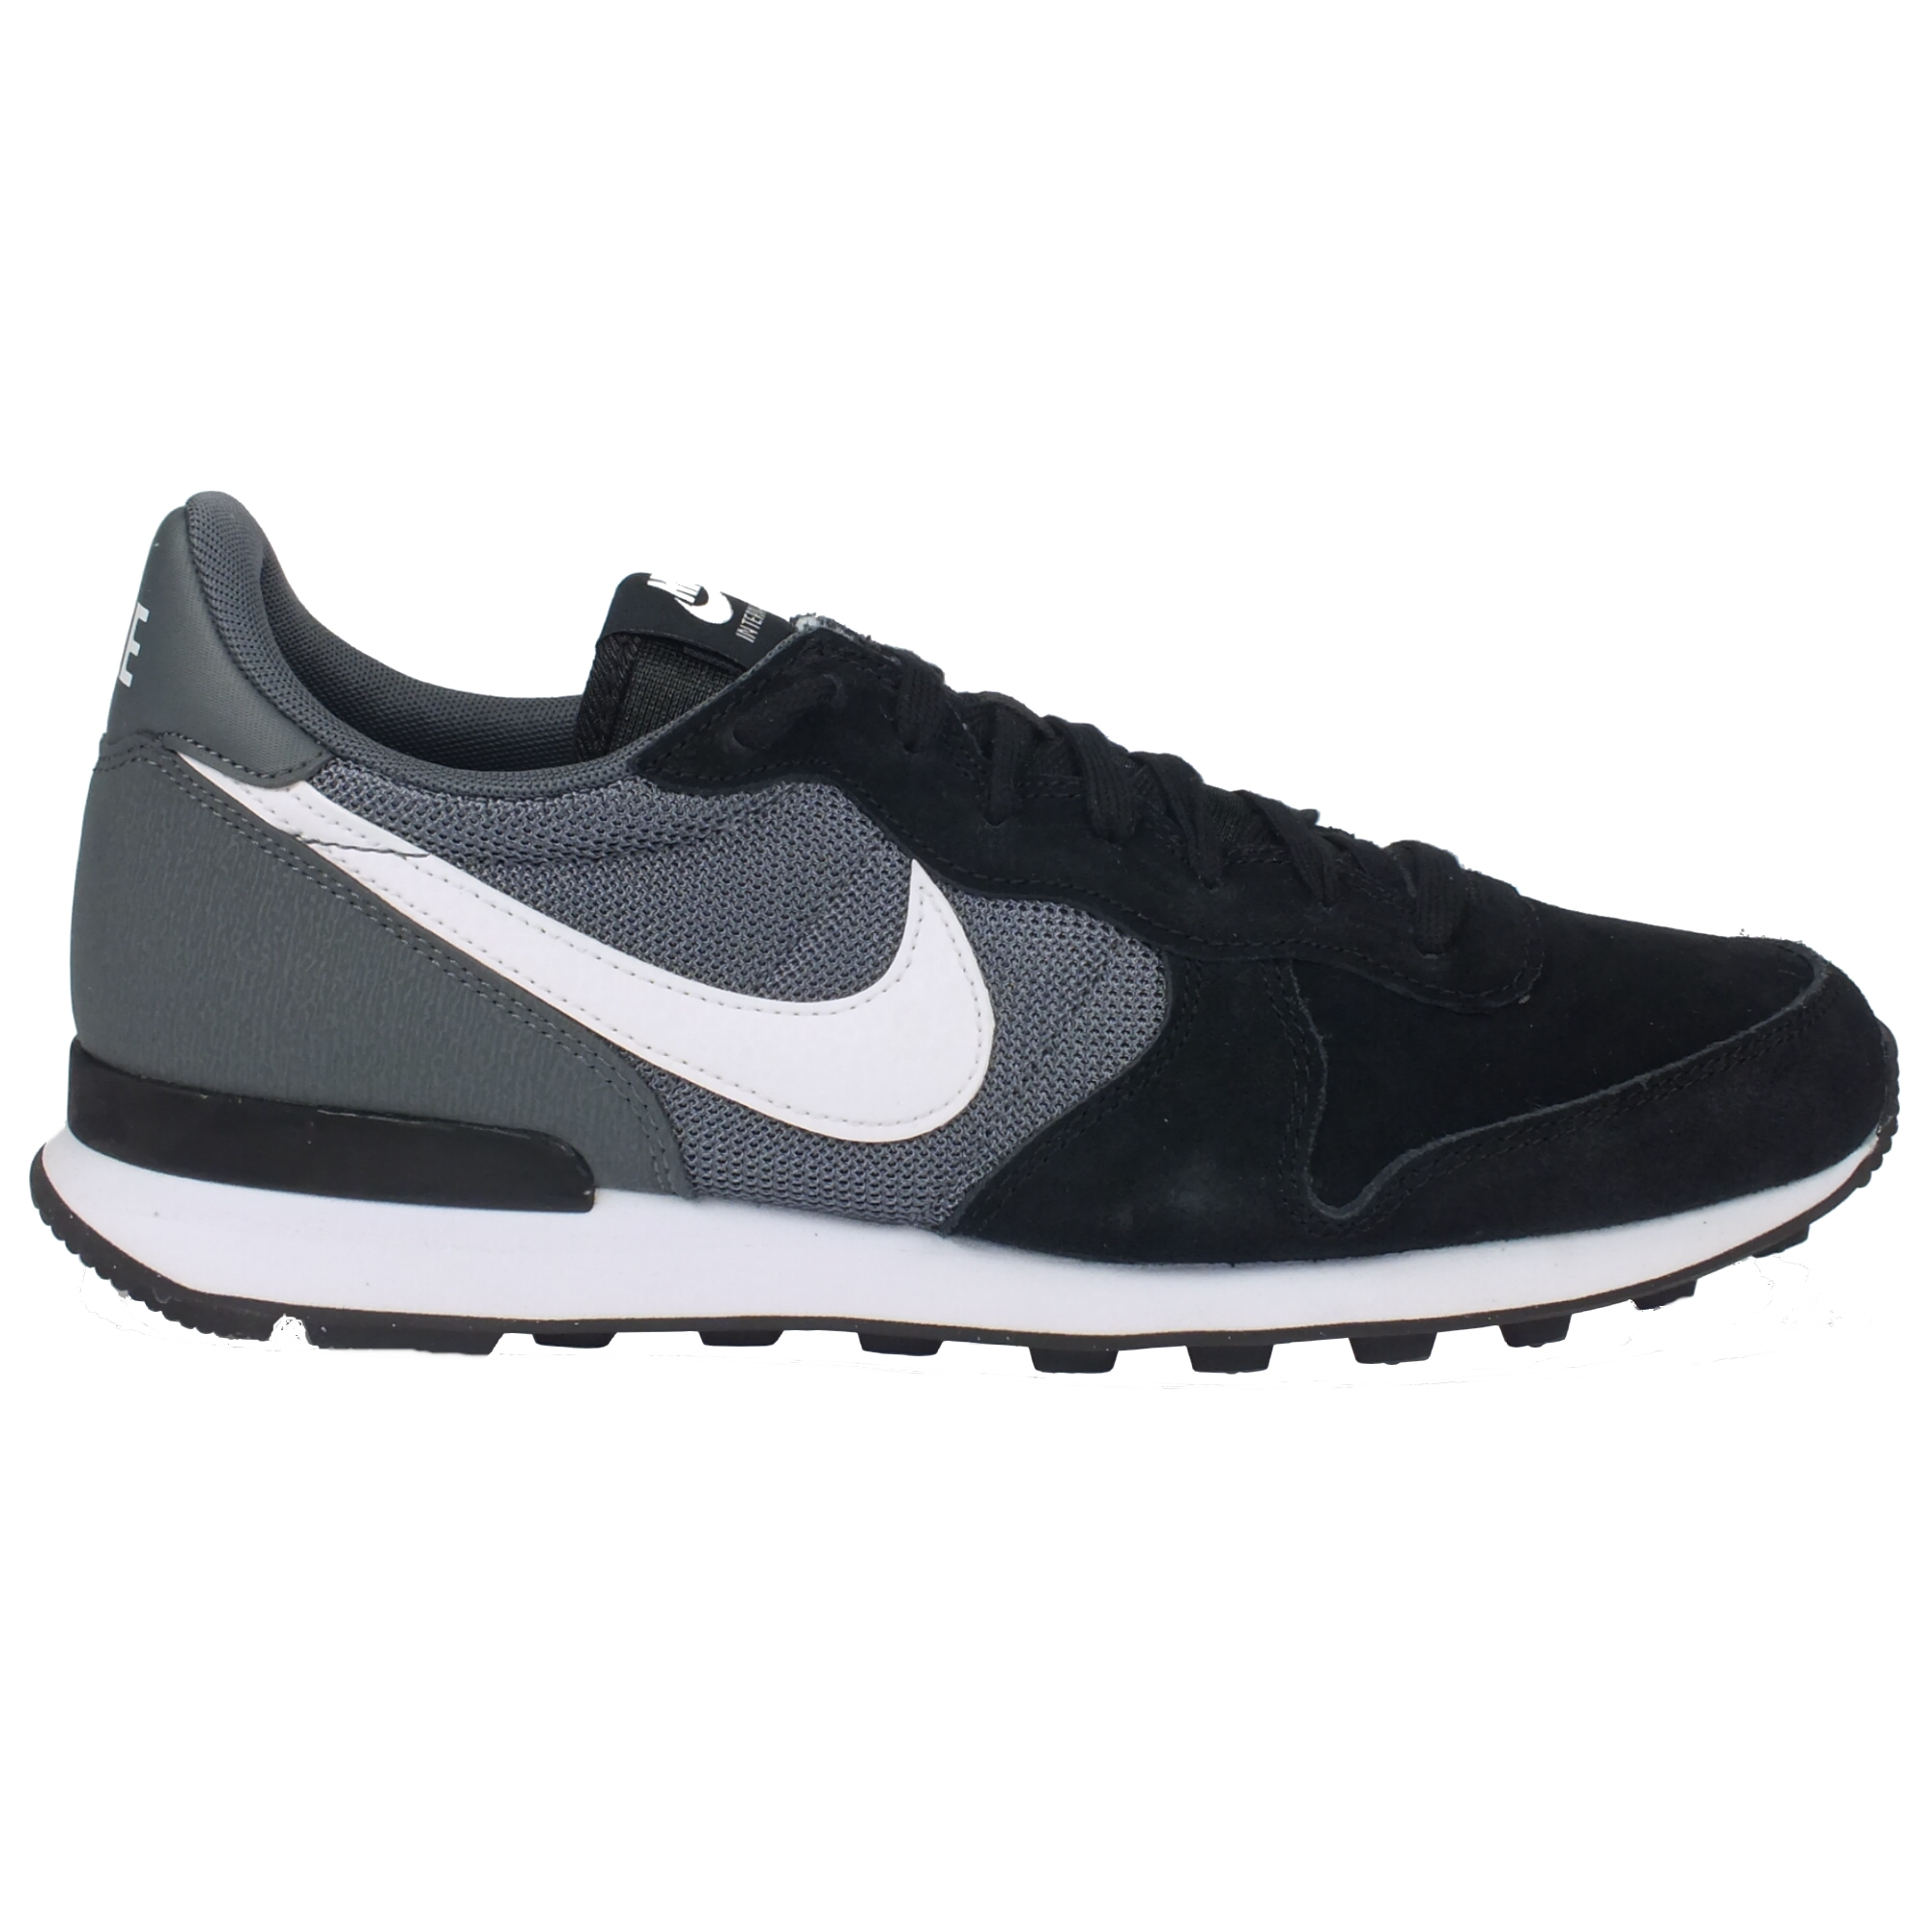 nike wmns internationalist schuhe sneaker turnschuhe damen grau braun schwarz ebay. Black Bedroom Furniture Sets. Home Design Ideas